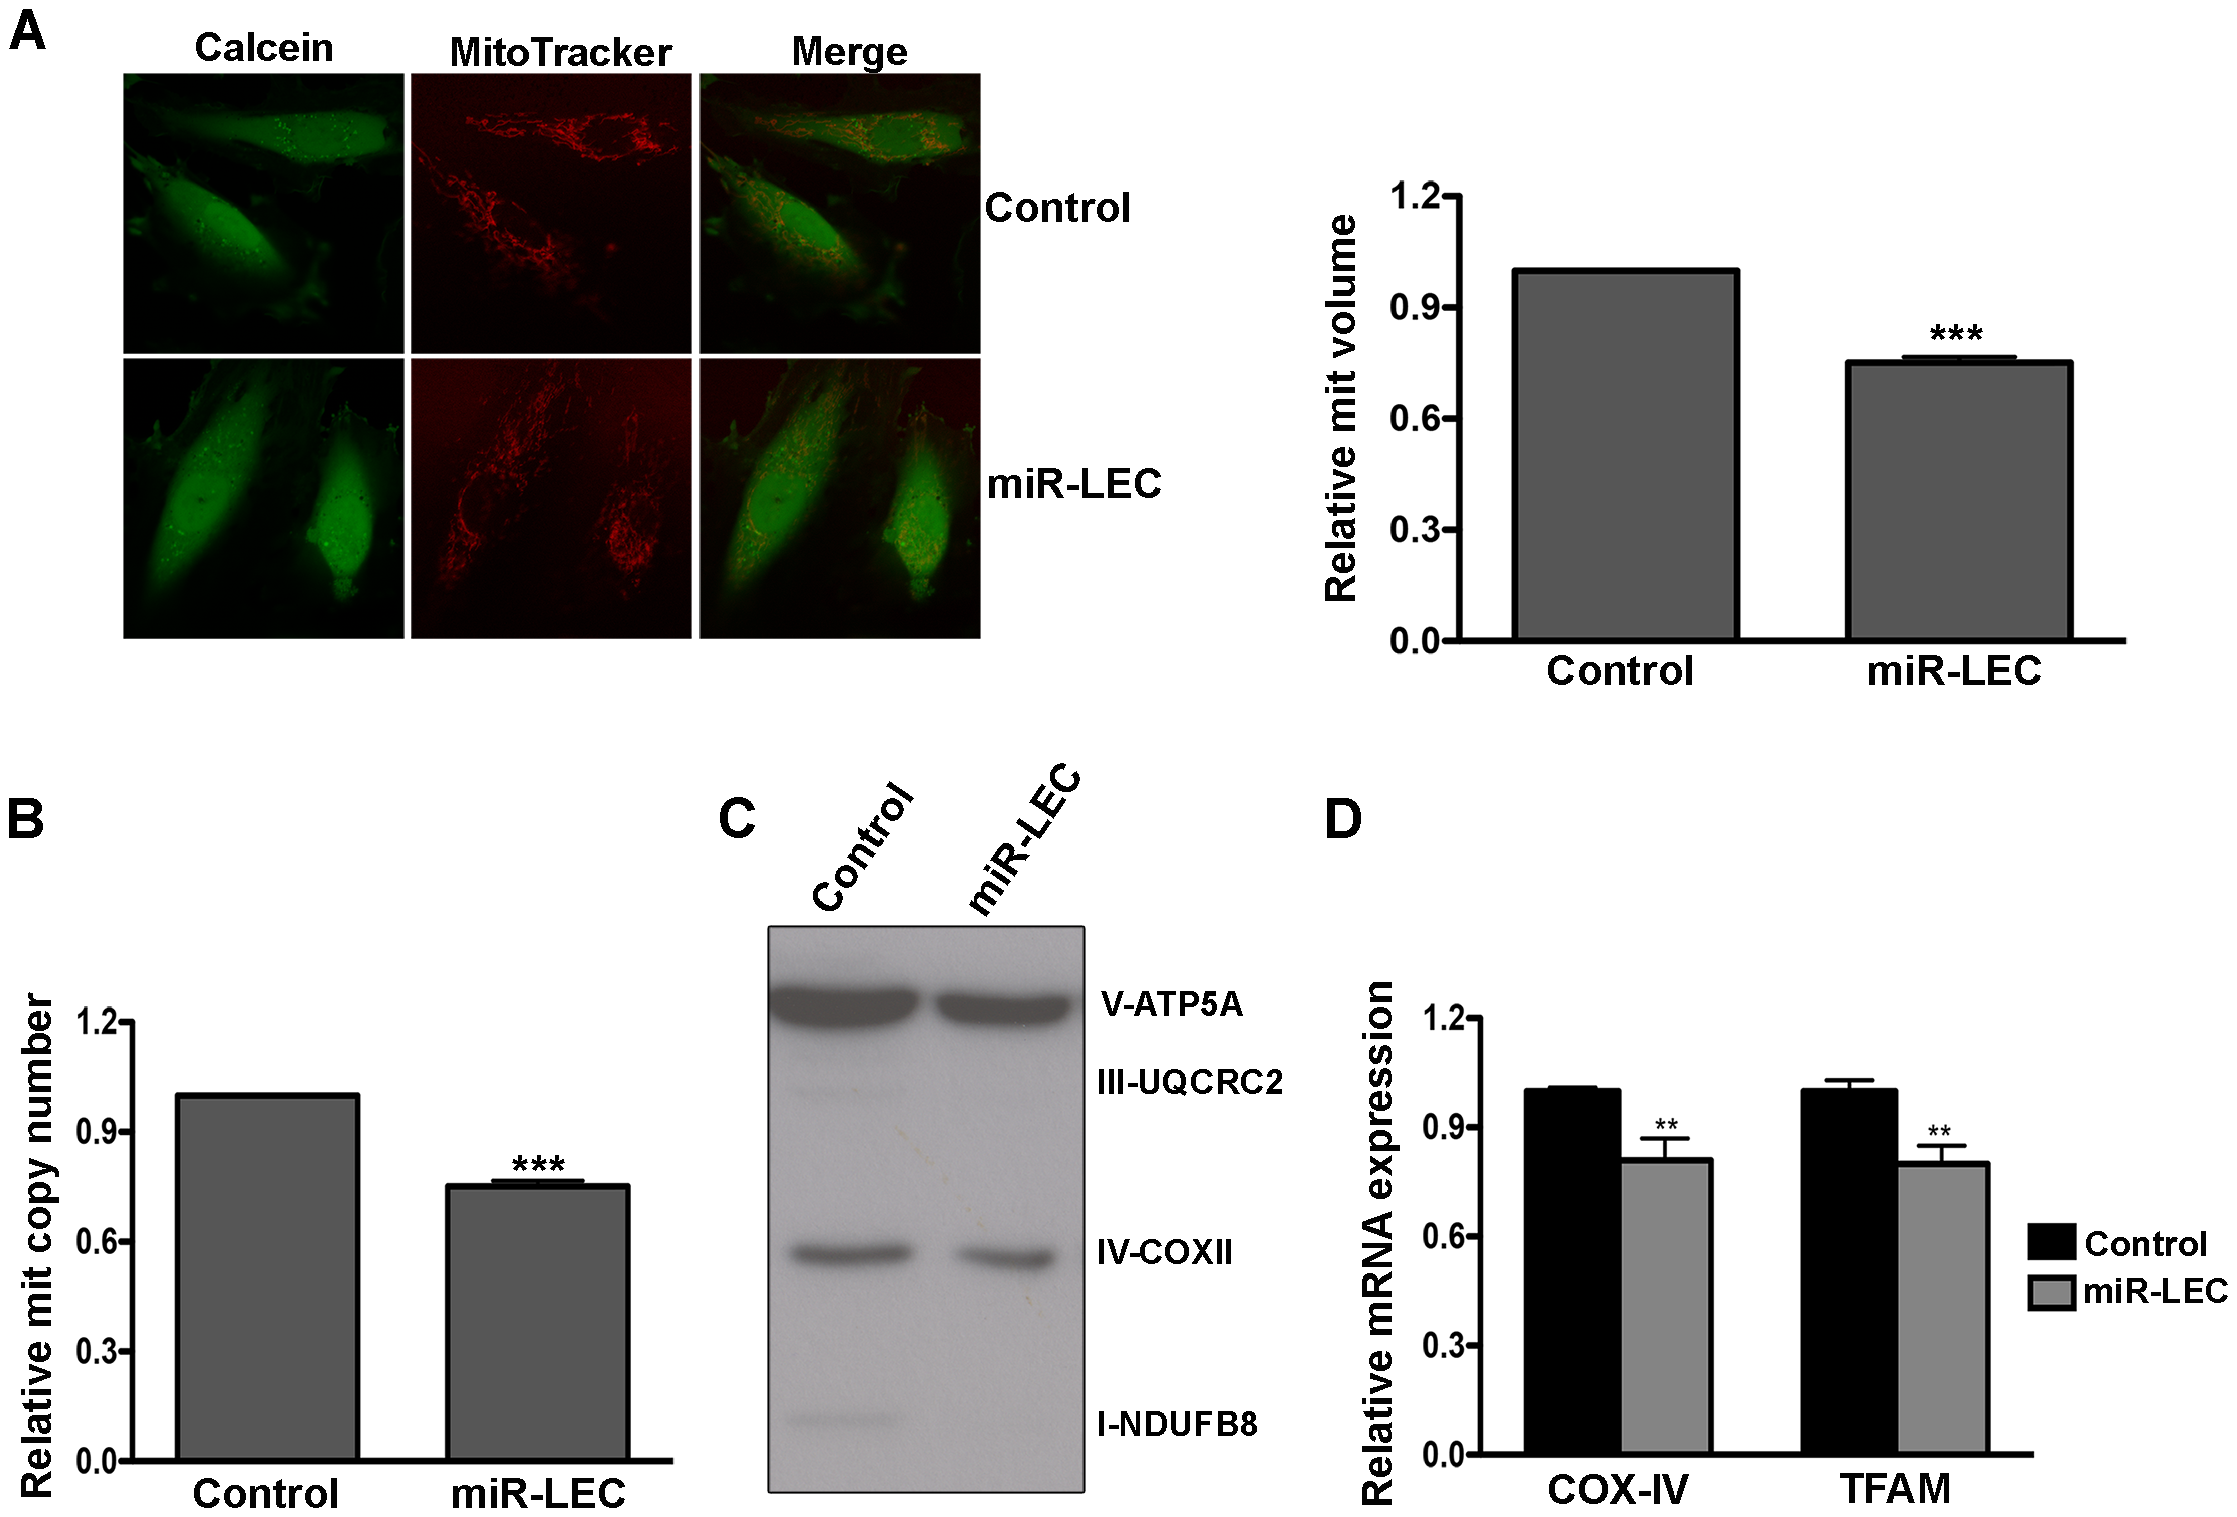 Expression of the KSHV miRNA cluster reduces mitochondrial biogenesis.